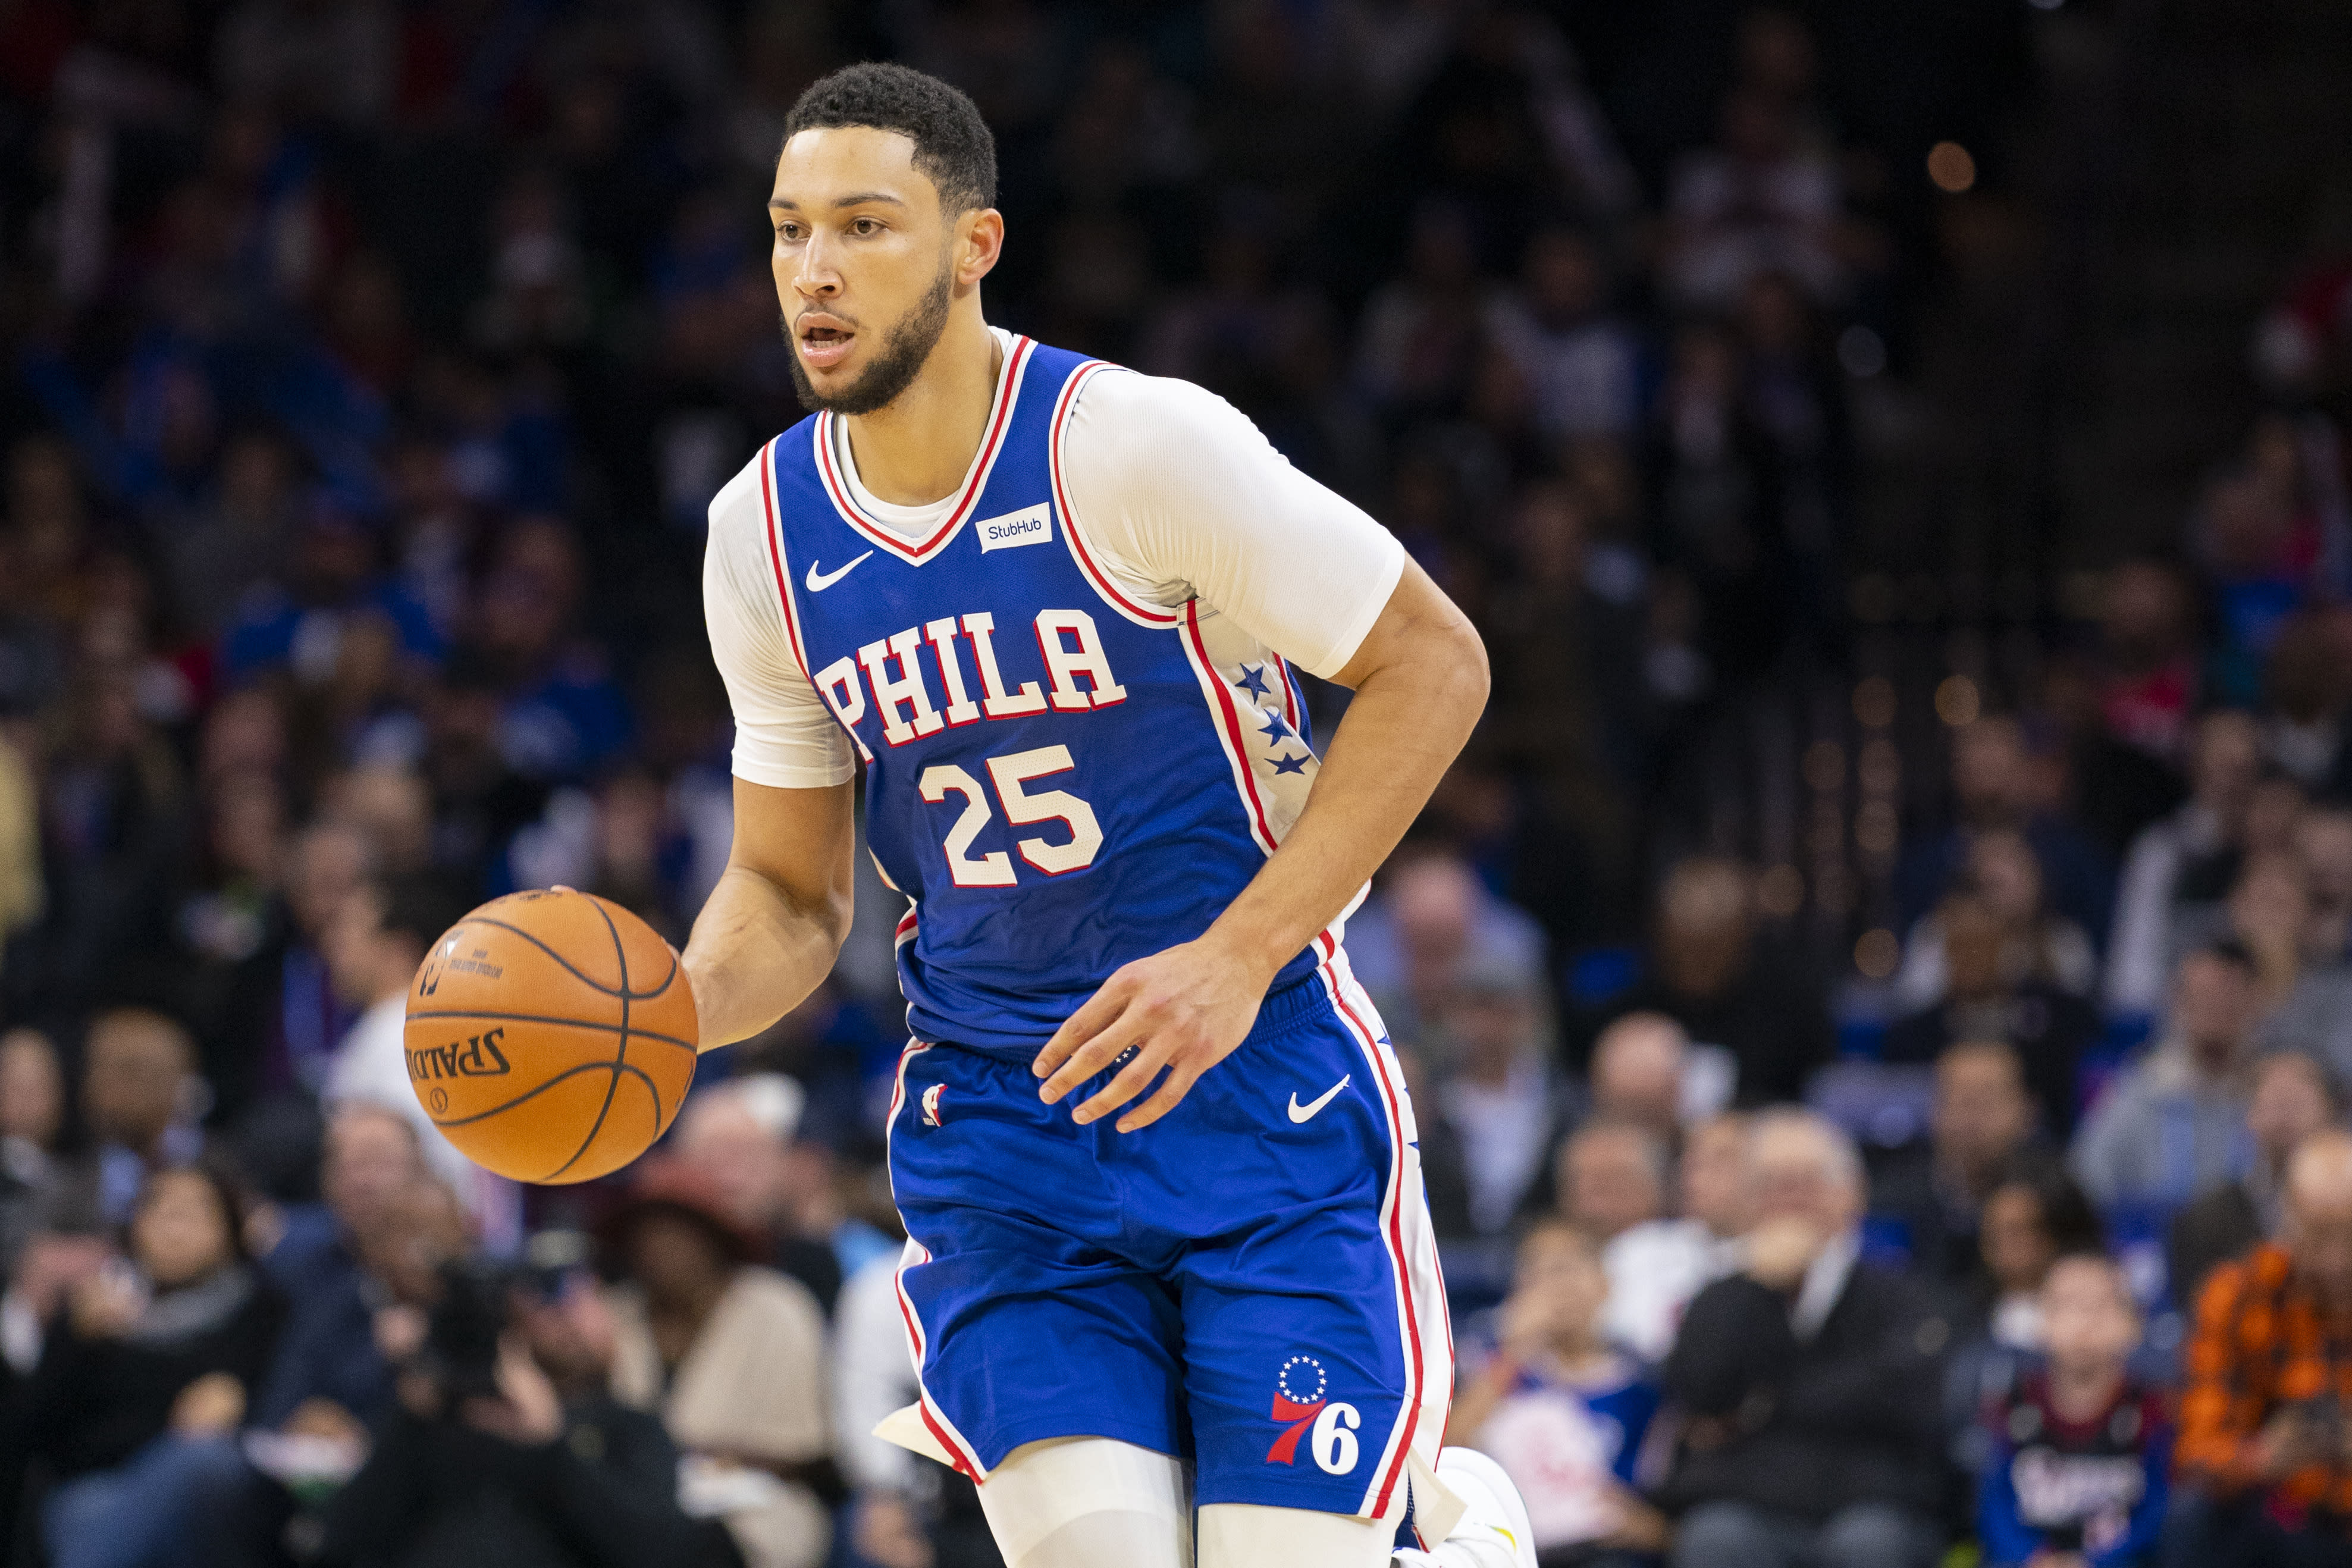 Sixers: Ben Simmons finally hits a 3-pointer